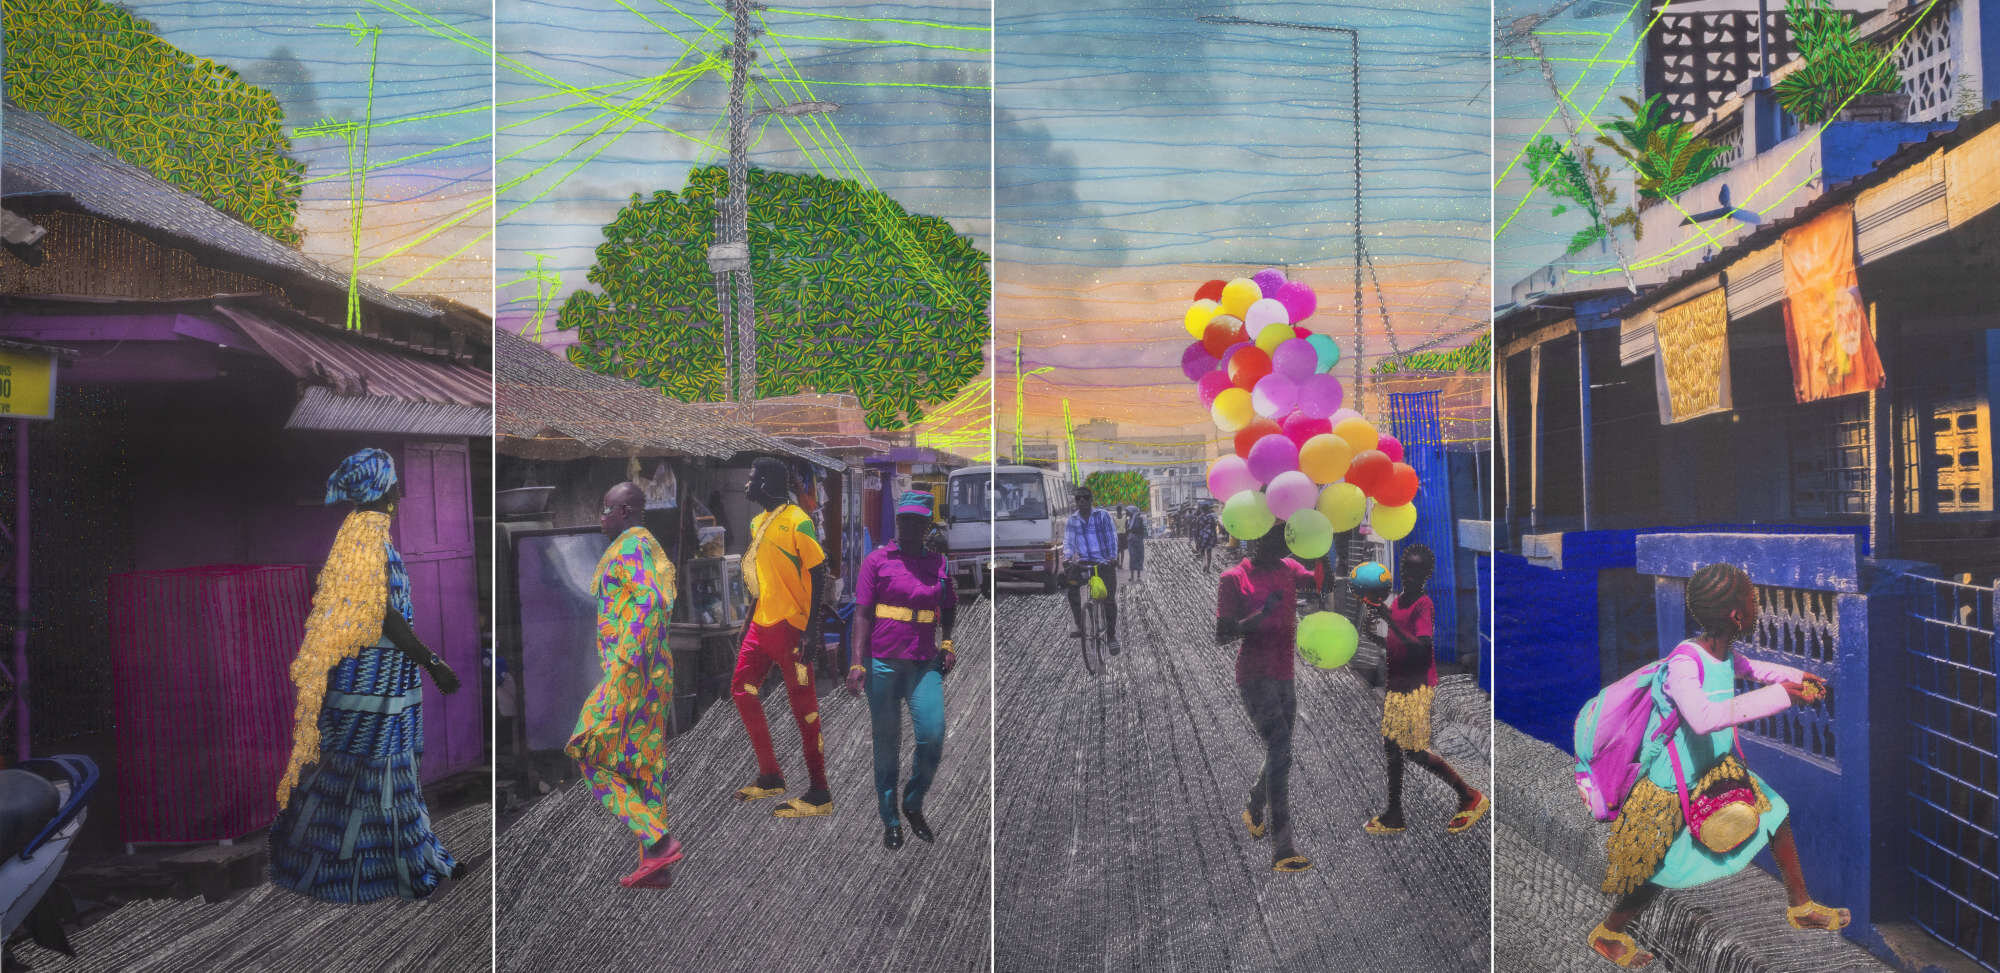 Joana Choumali, RELATING TO IMAGINARY THINGS (2019). Series ALBAHIAN, 2x1m. Image copyright the artist and courtesy Gallery 1957, Accra